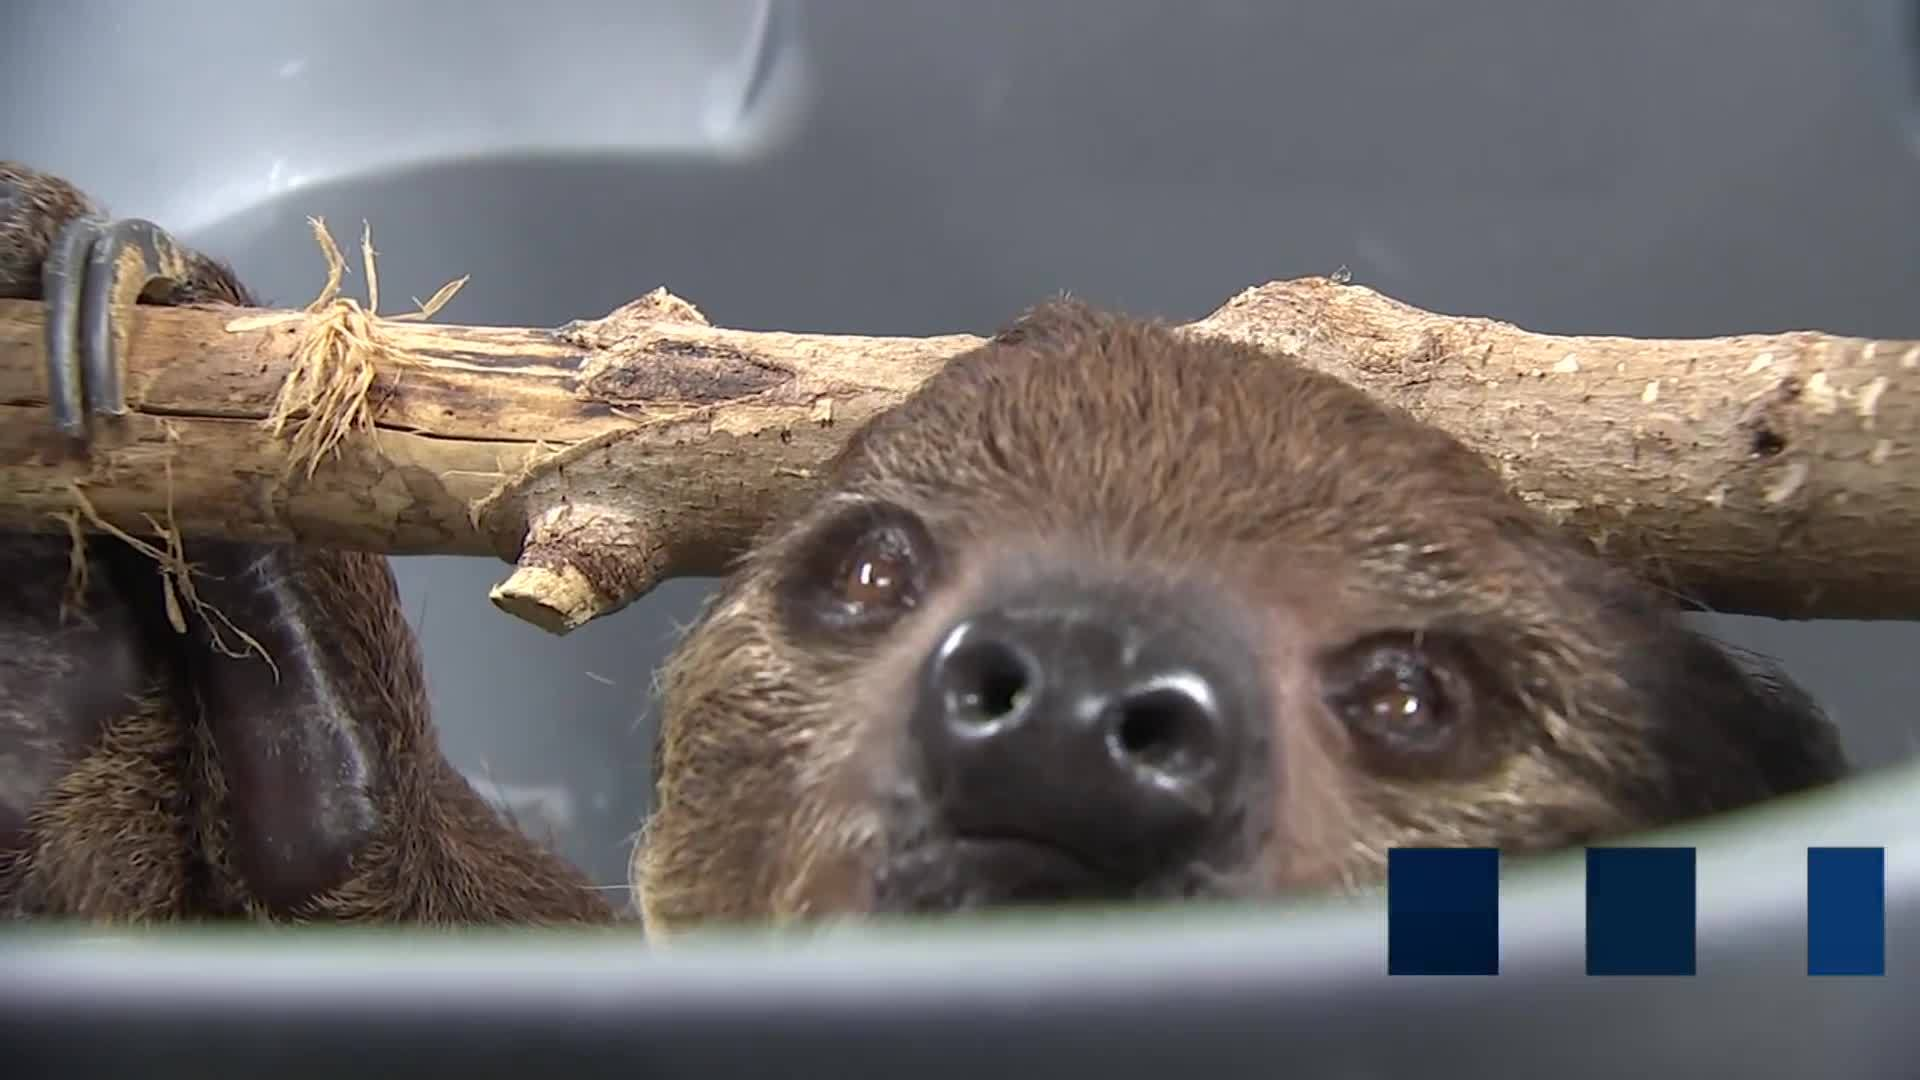 Sloth_gets_first_exam_at_Nashville_Zoo_s_7_20190308225058